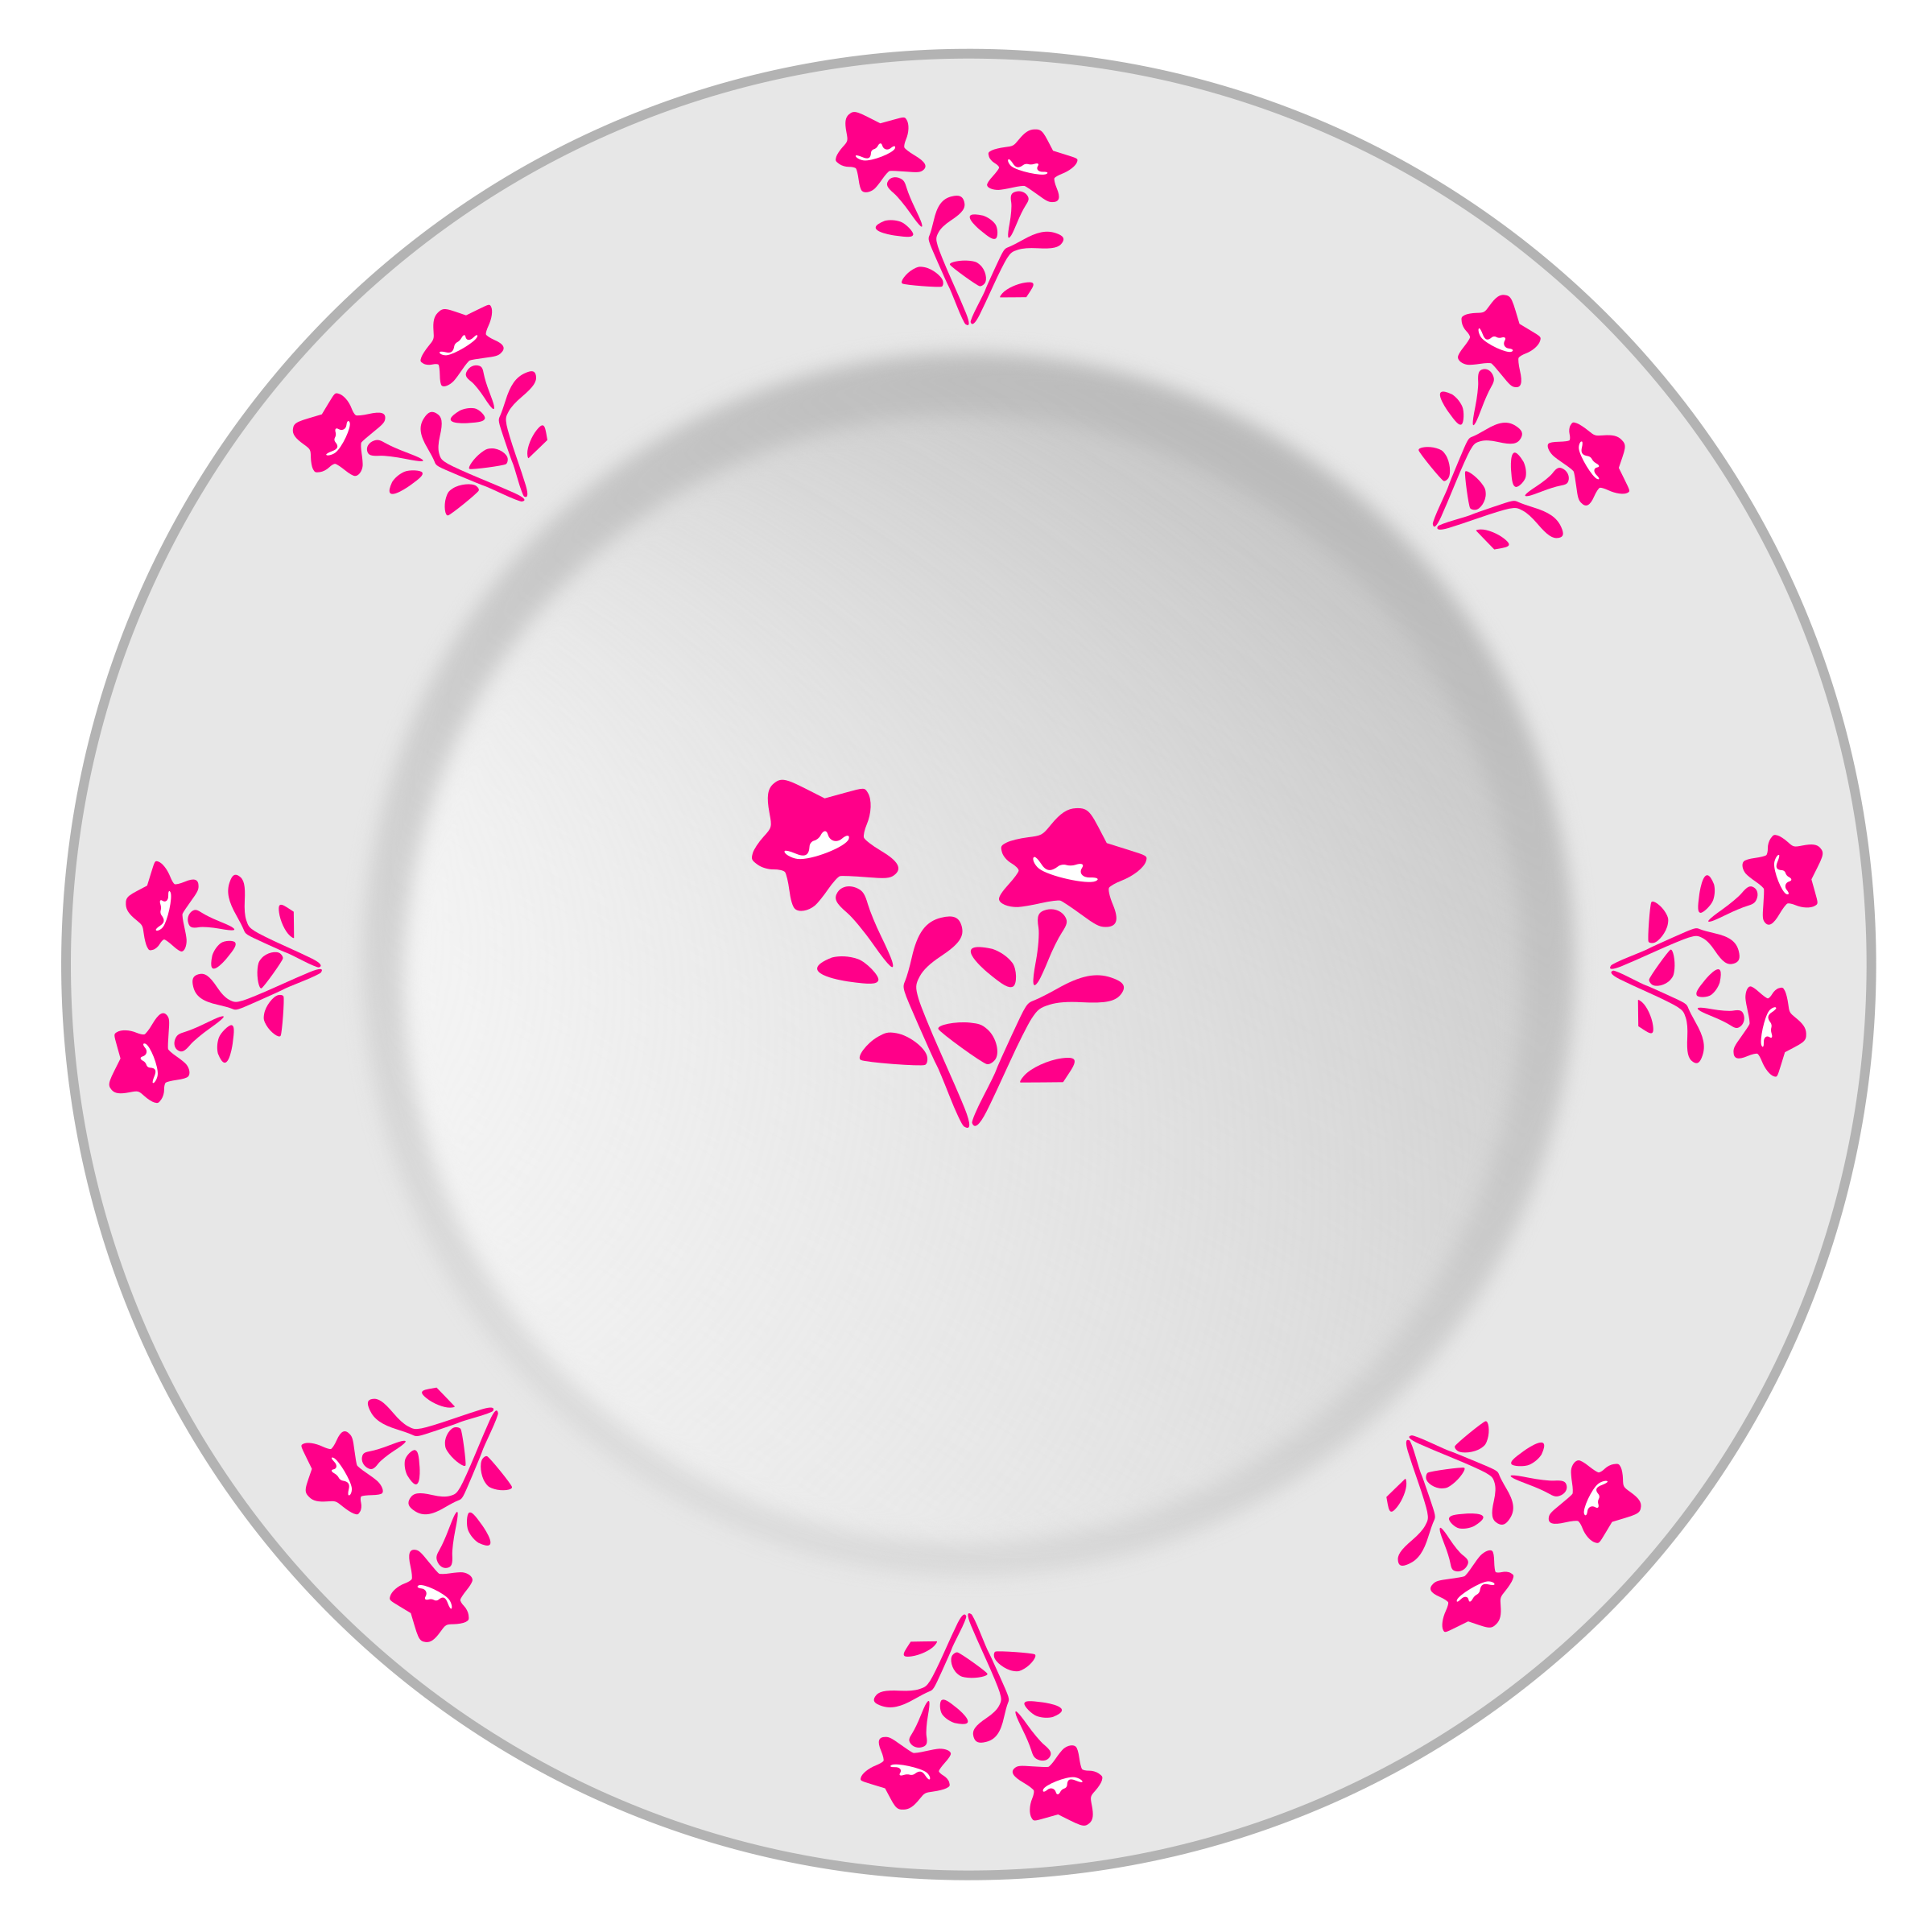 Plate with flower pattern 2 by yamachem